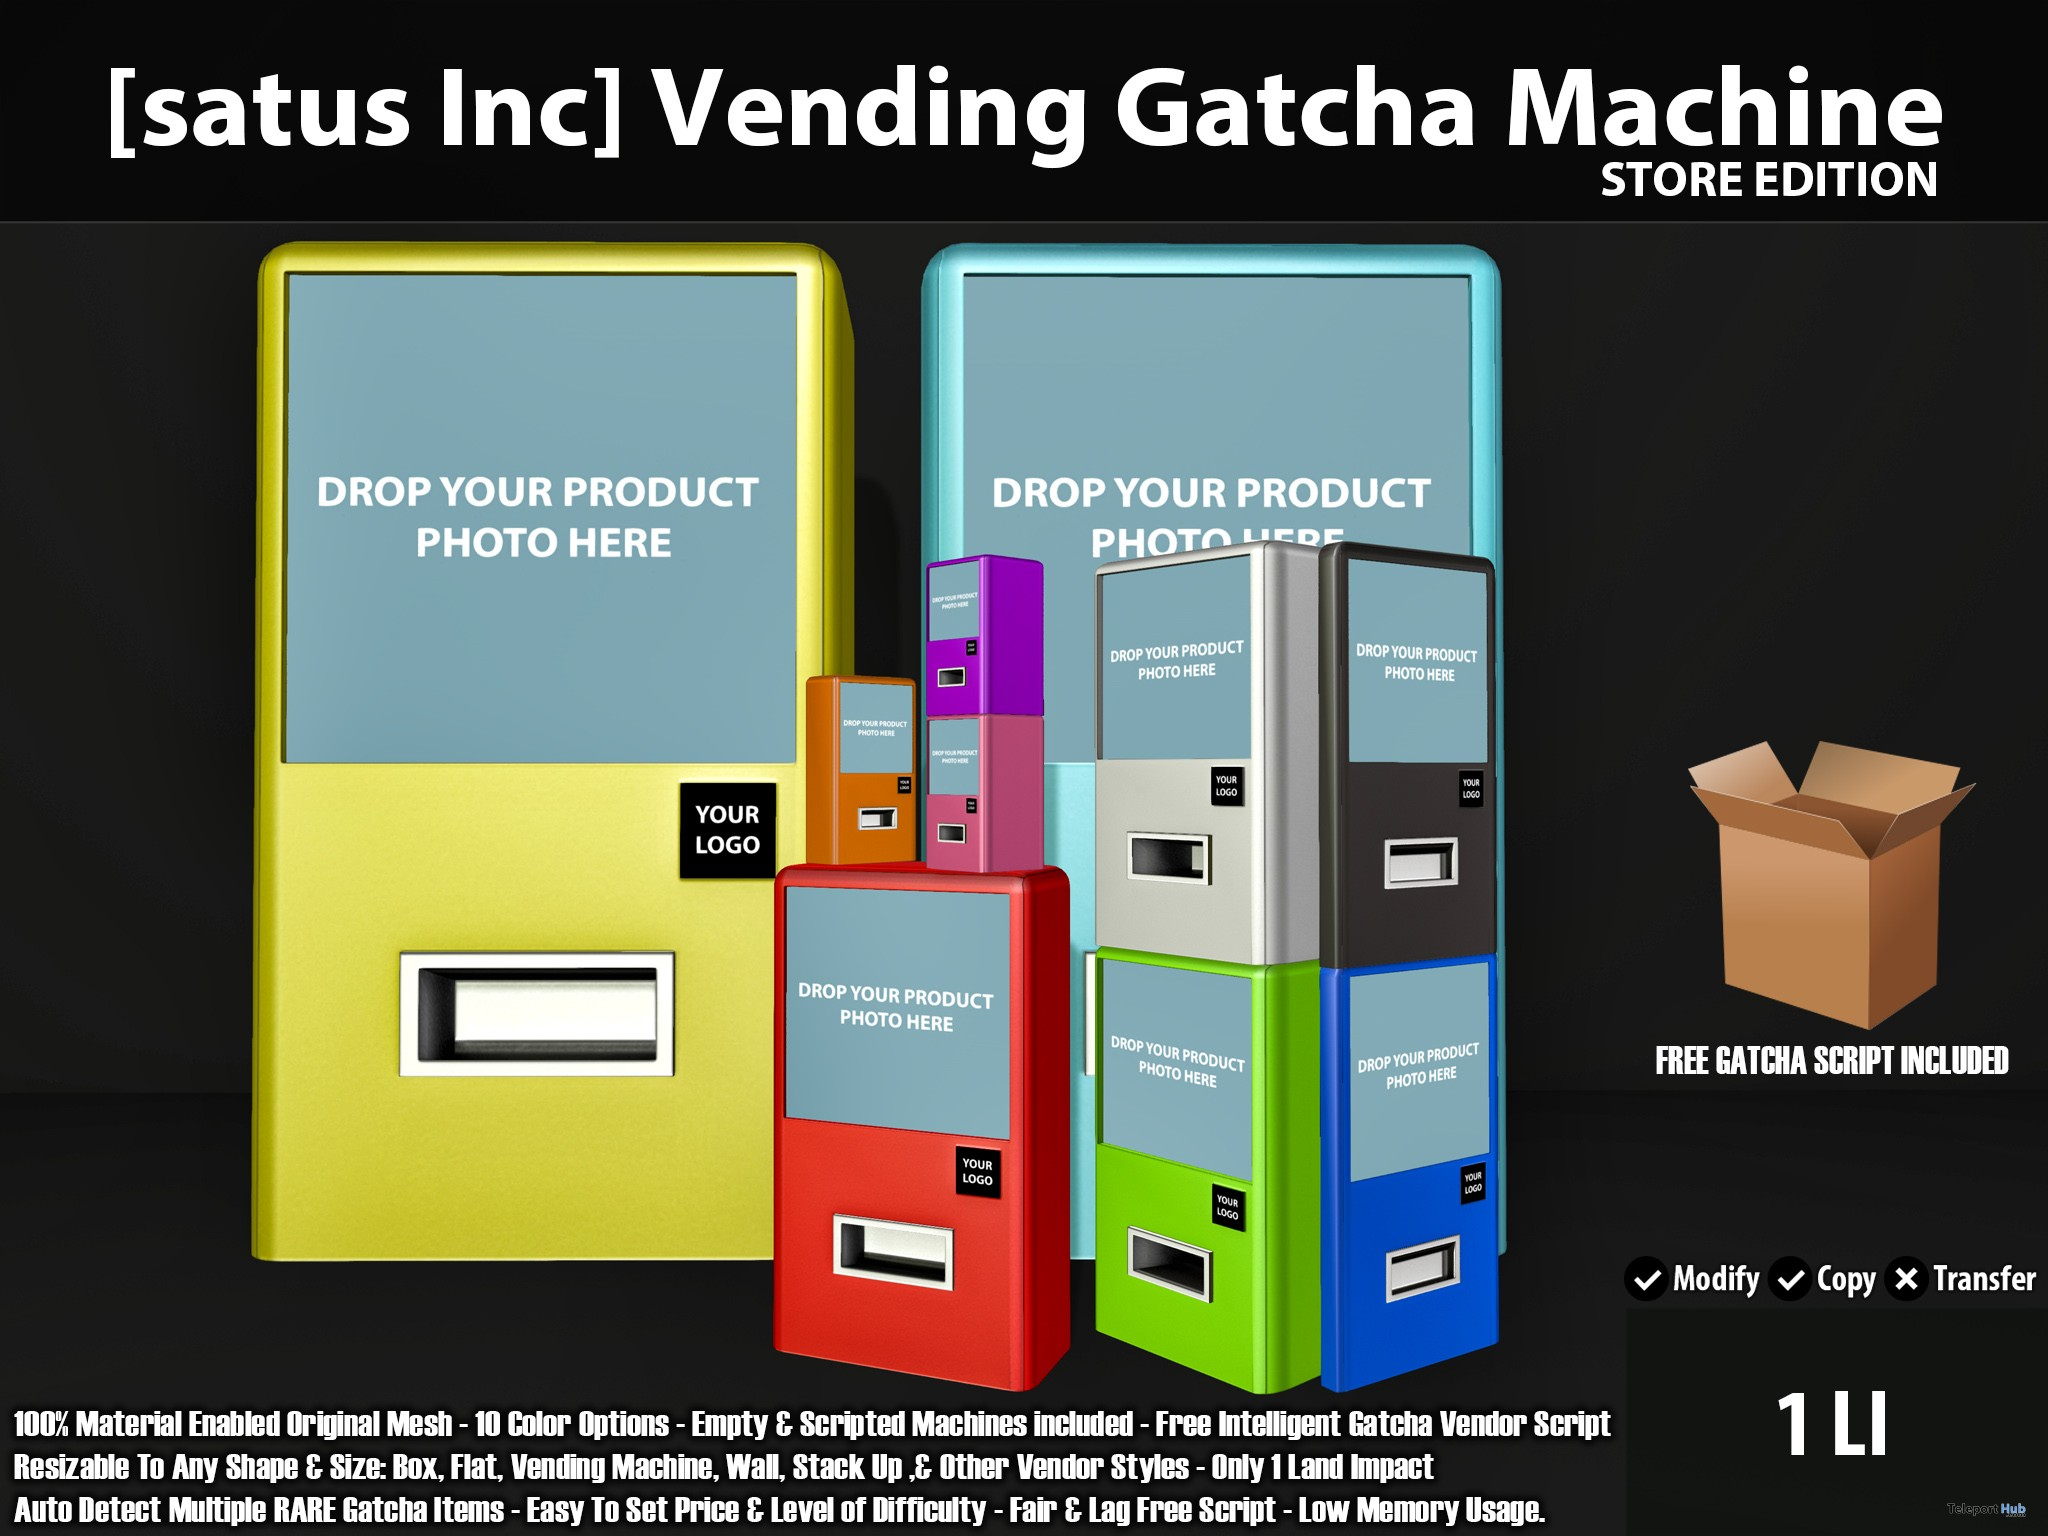 New Release: Vending Gatcha Machine Store & Event Editions by [satus Inc] - Teleport Hub - teleporthub.com